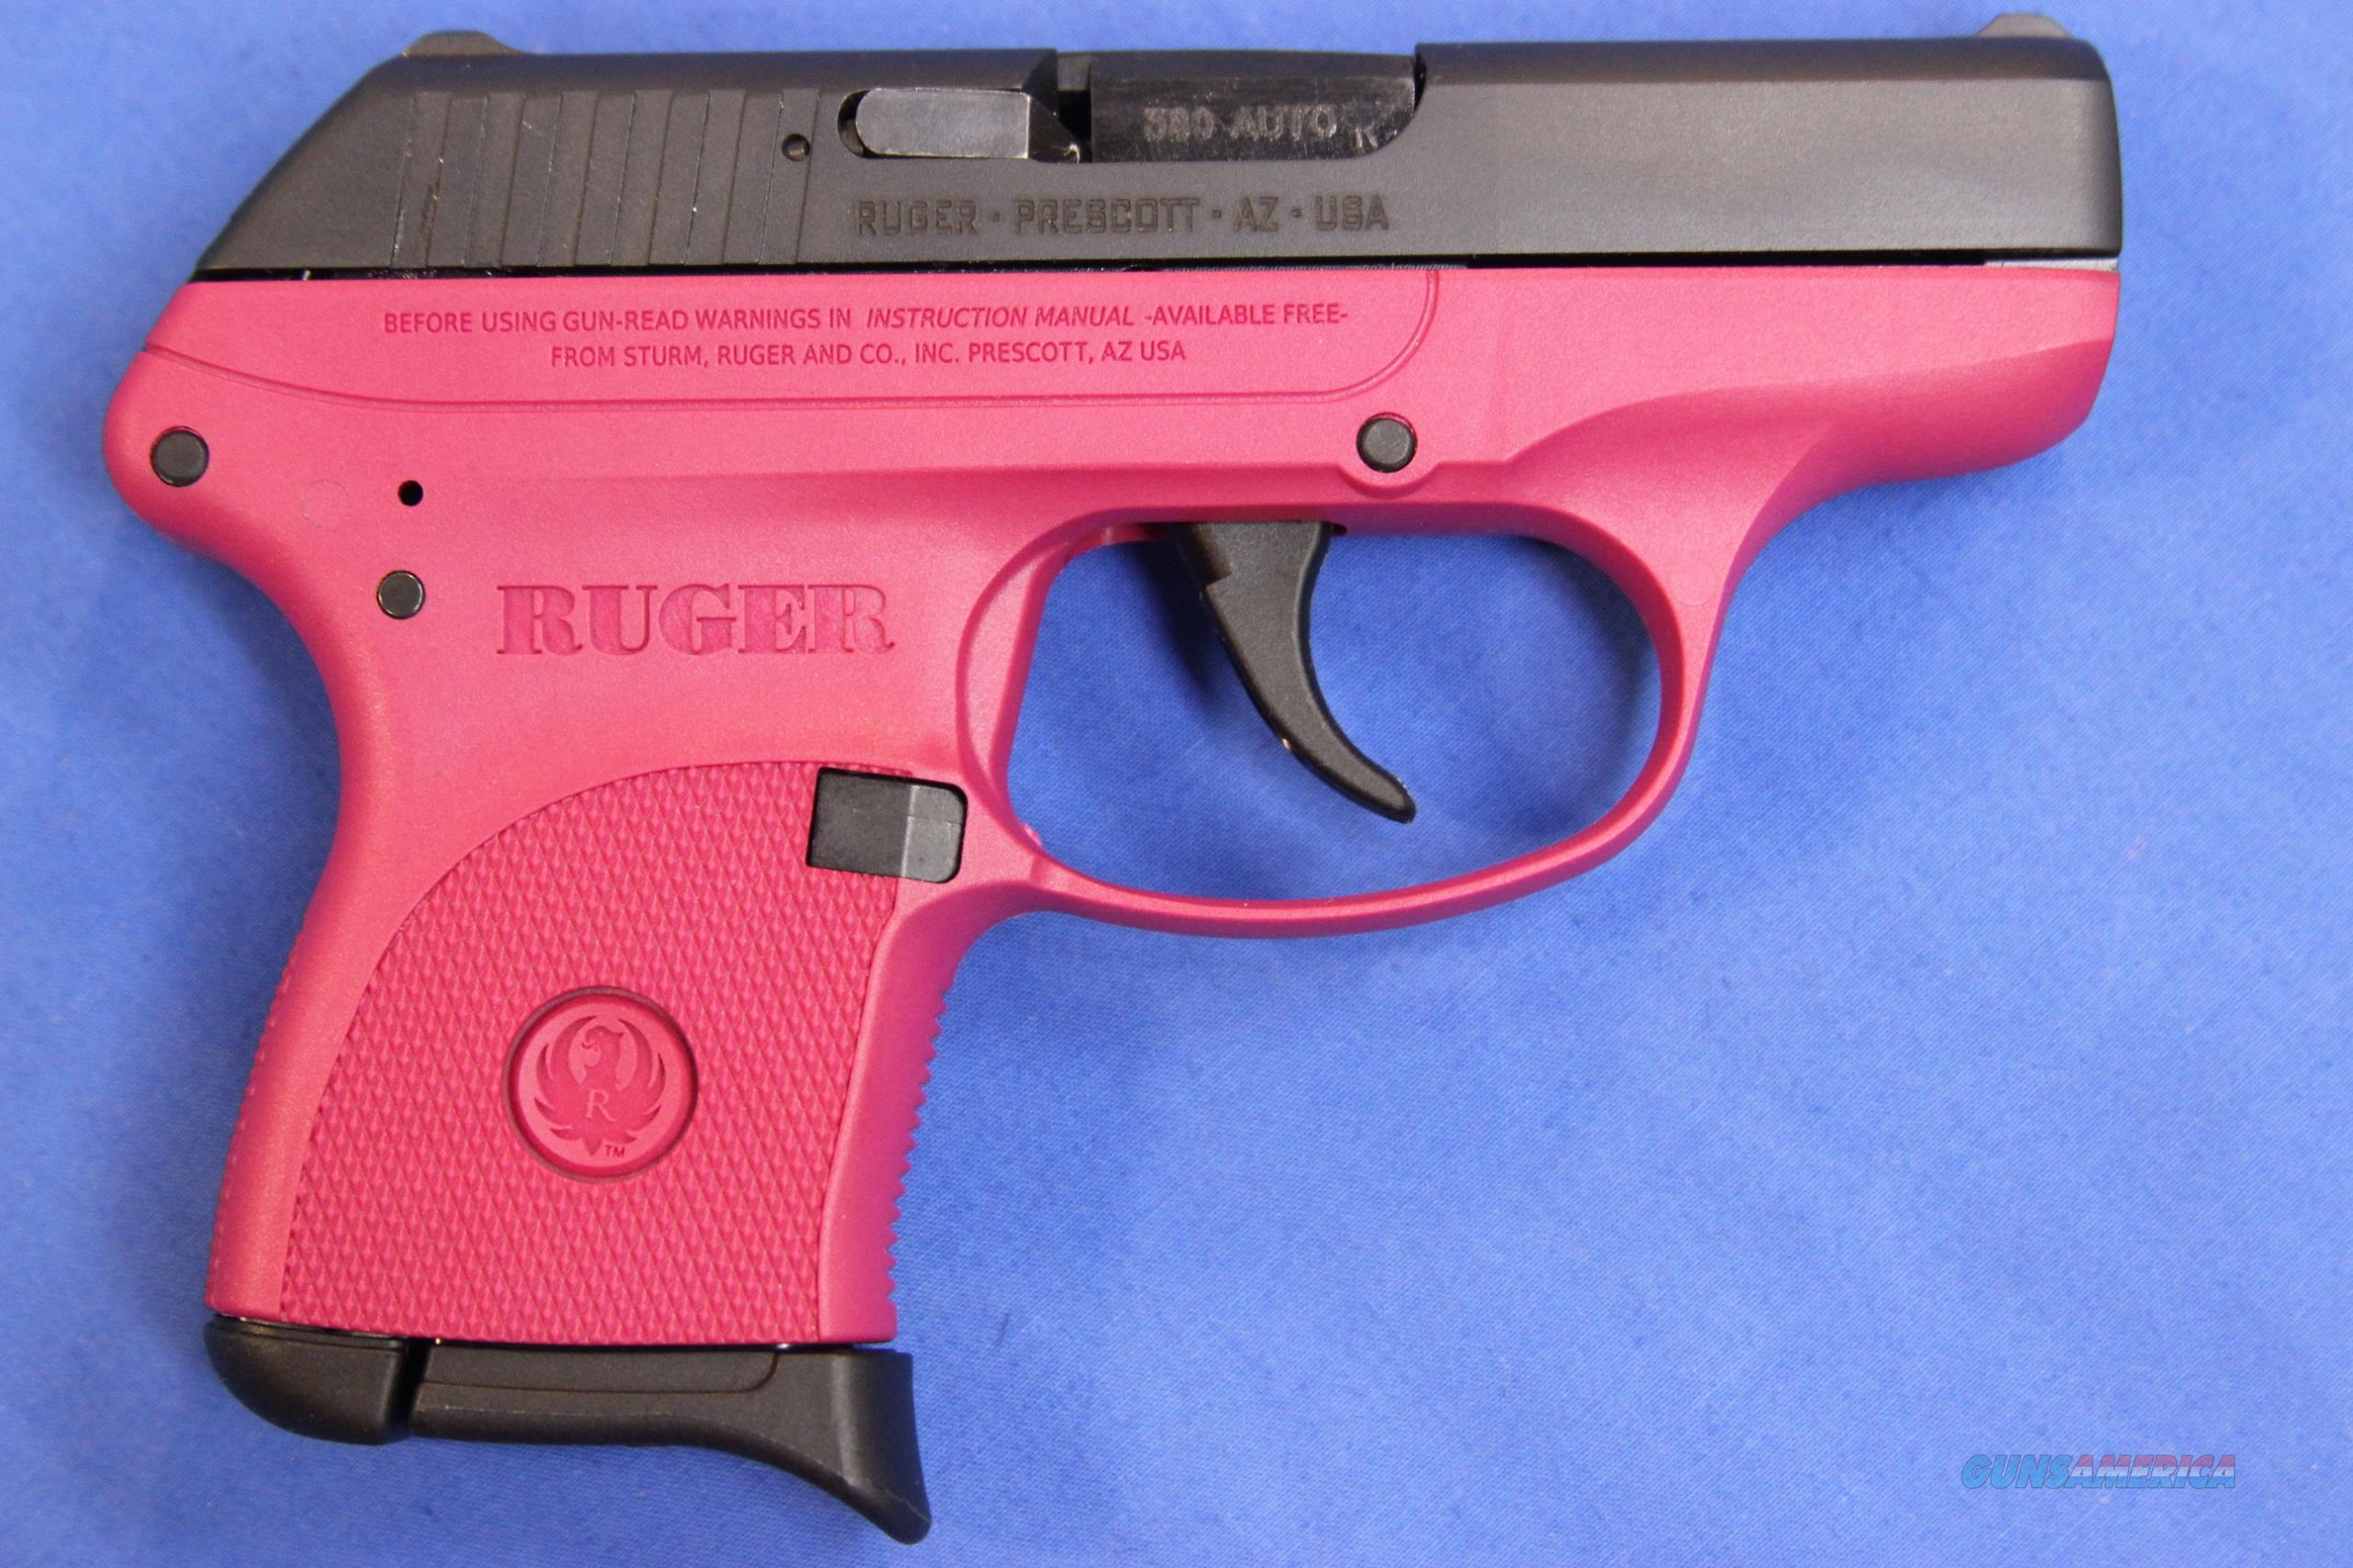 RUGER LCP .380 ACP RASPBERRRY - NEW!  Guns > Pistols > Ruger Semi-Auto Pistols > LCP